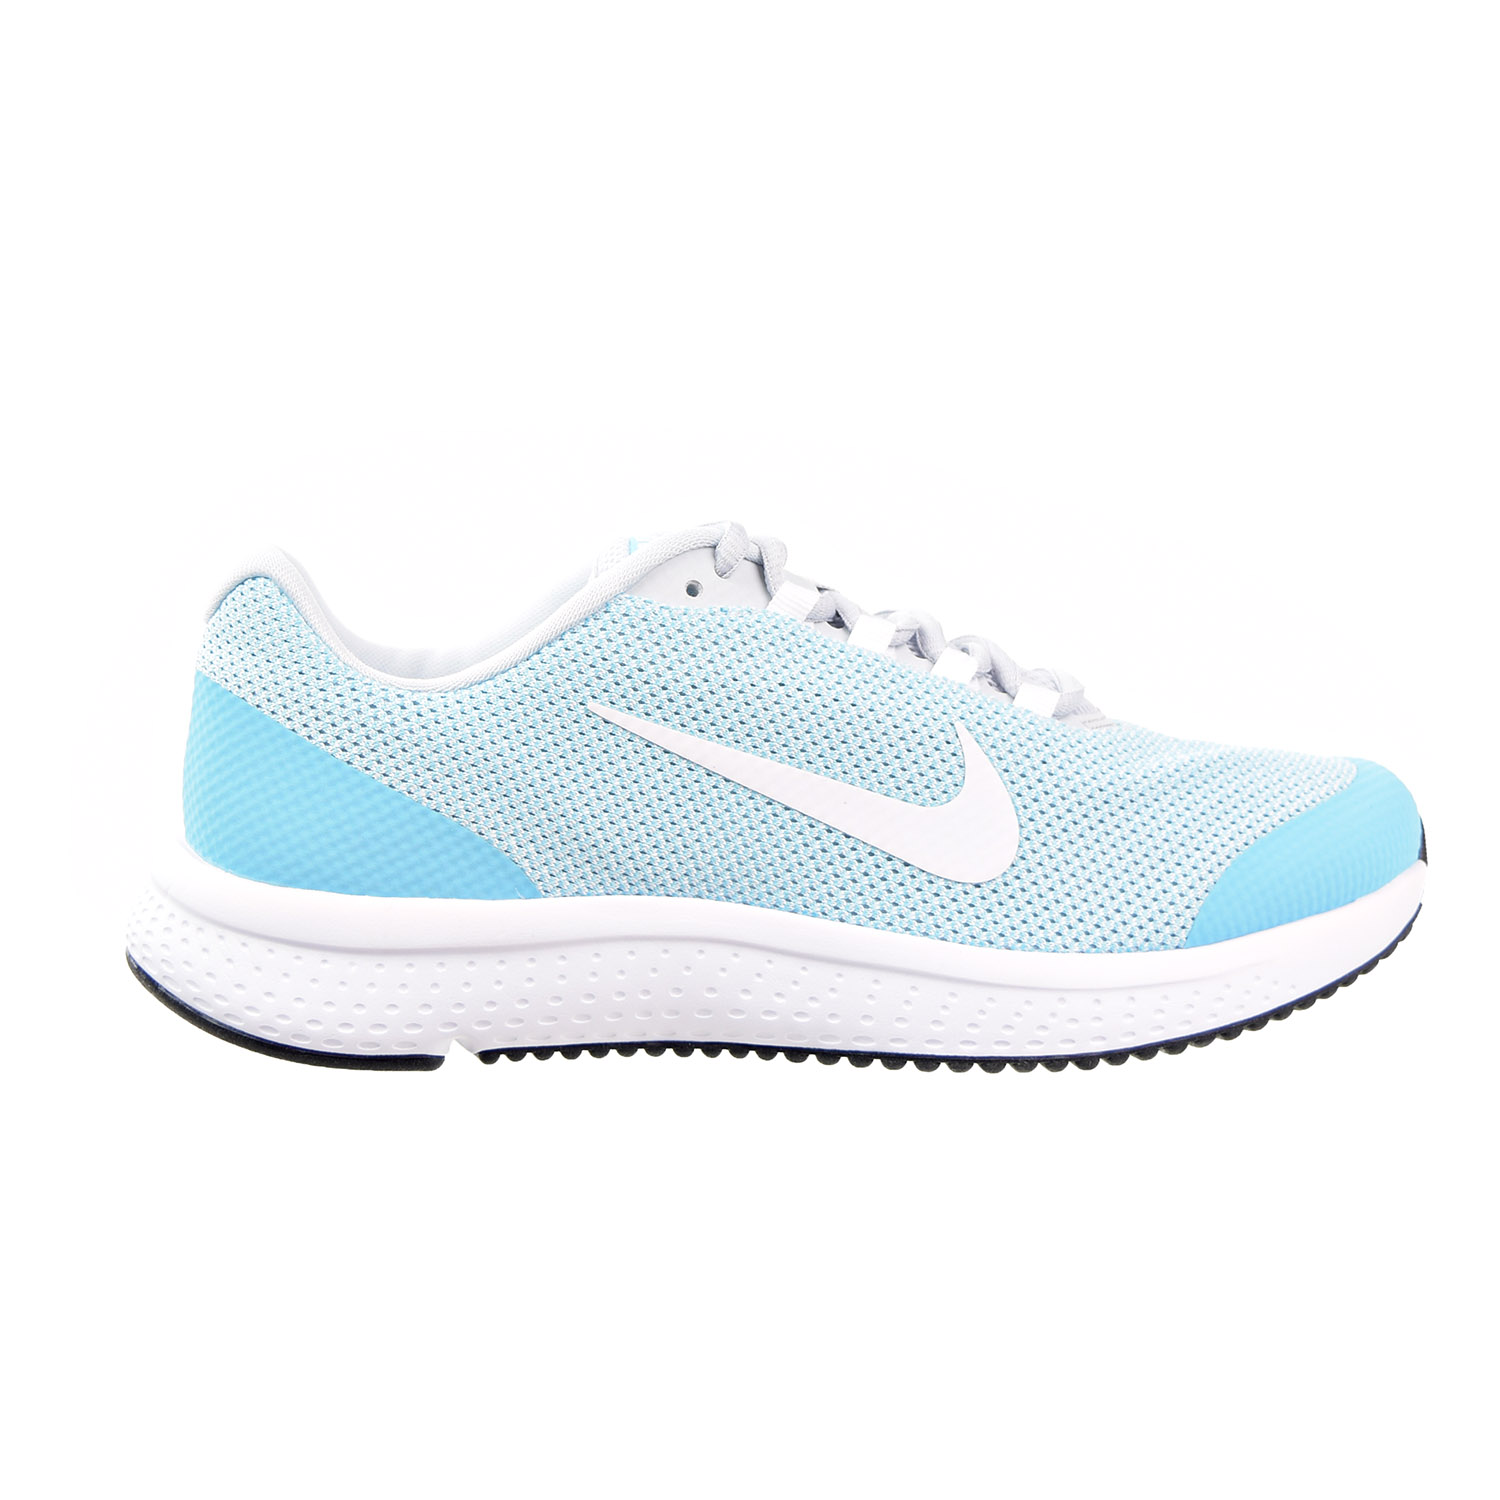 Nike Run All Platinum/Wolf Day Women's Shoes Pure Platinum/Wolf All Grey/Polarized Blue 898484-004 cff4b2